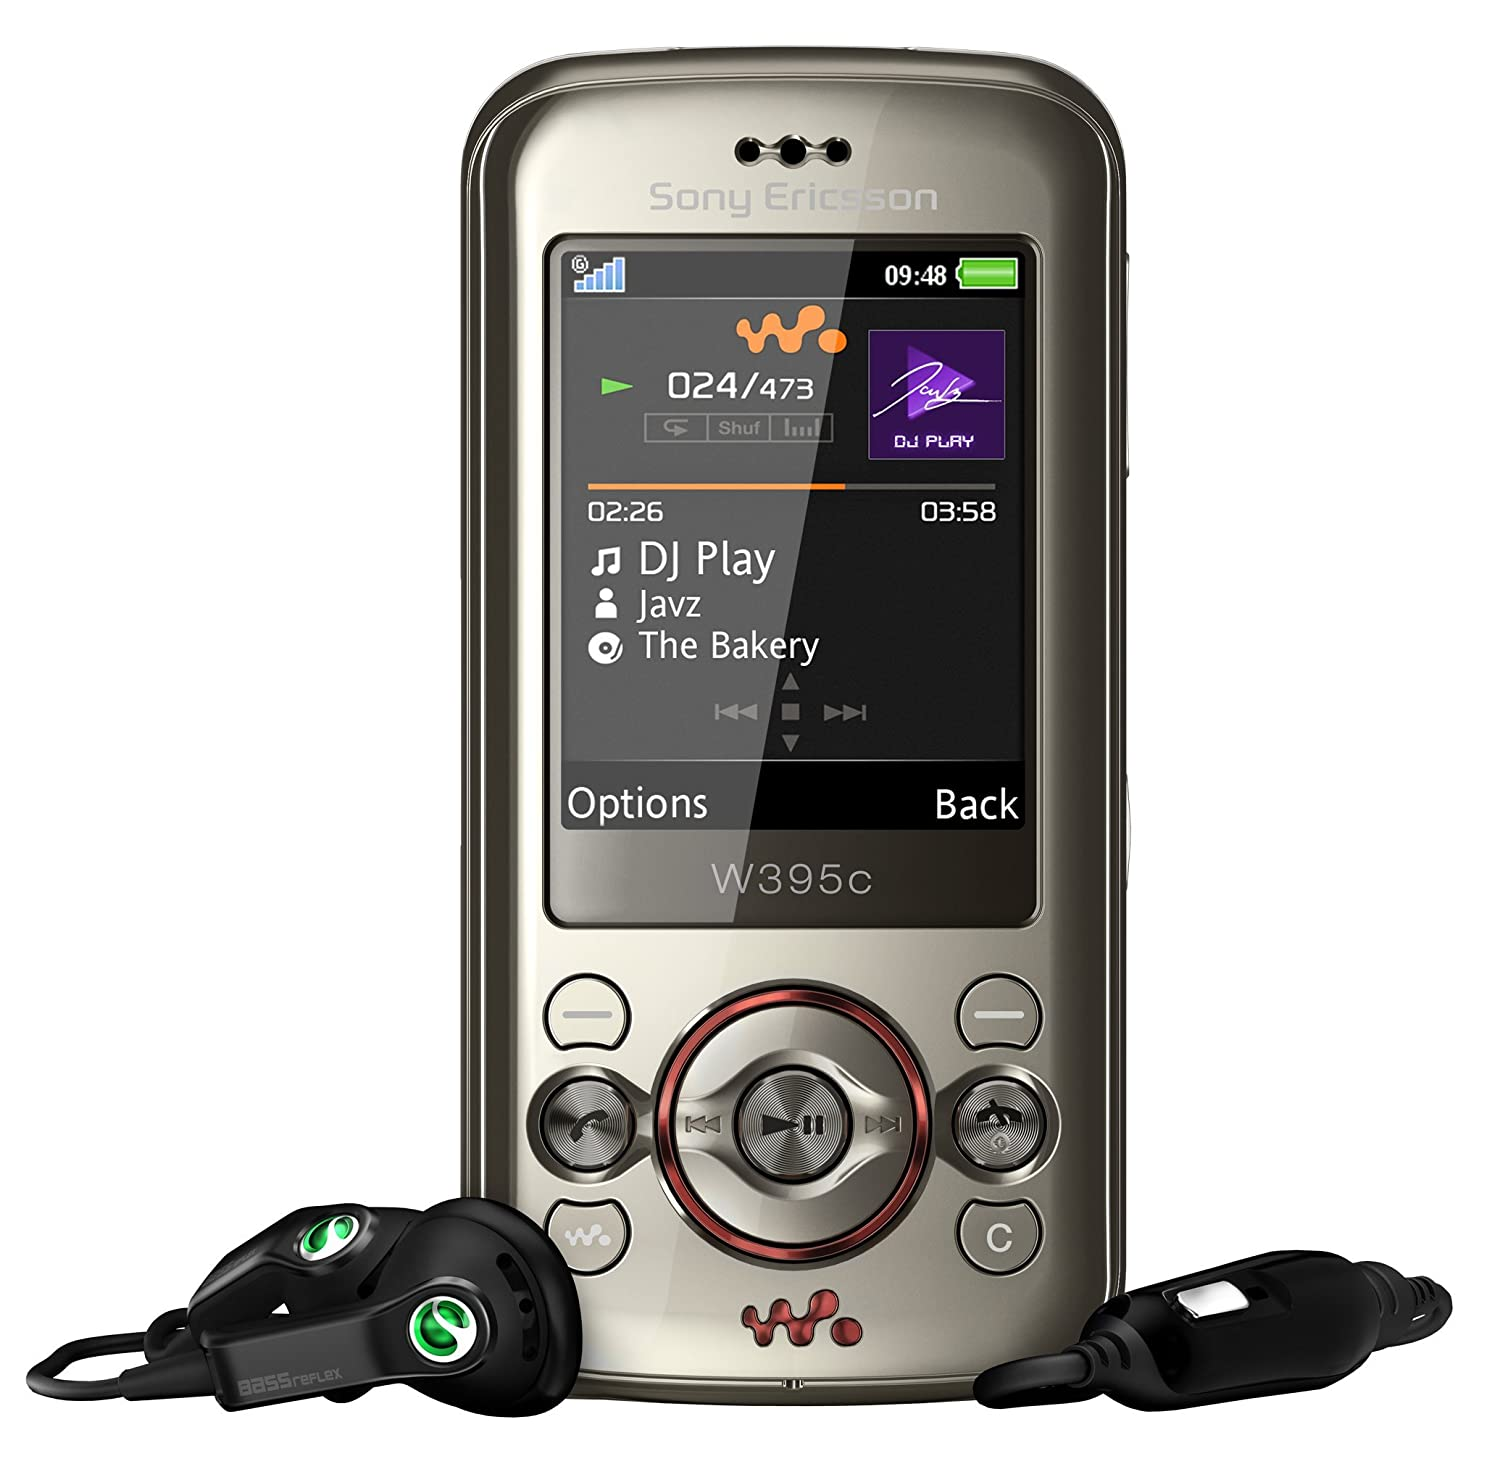 Amazon Unlocked Sony Ericsson W395 W395i Sanrio Walkman Quadband GSM Phone with 2 0 MP Camera and Video calling Pink International phone Cell